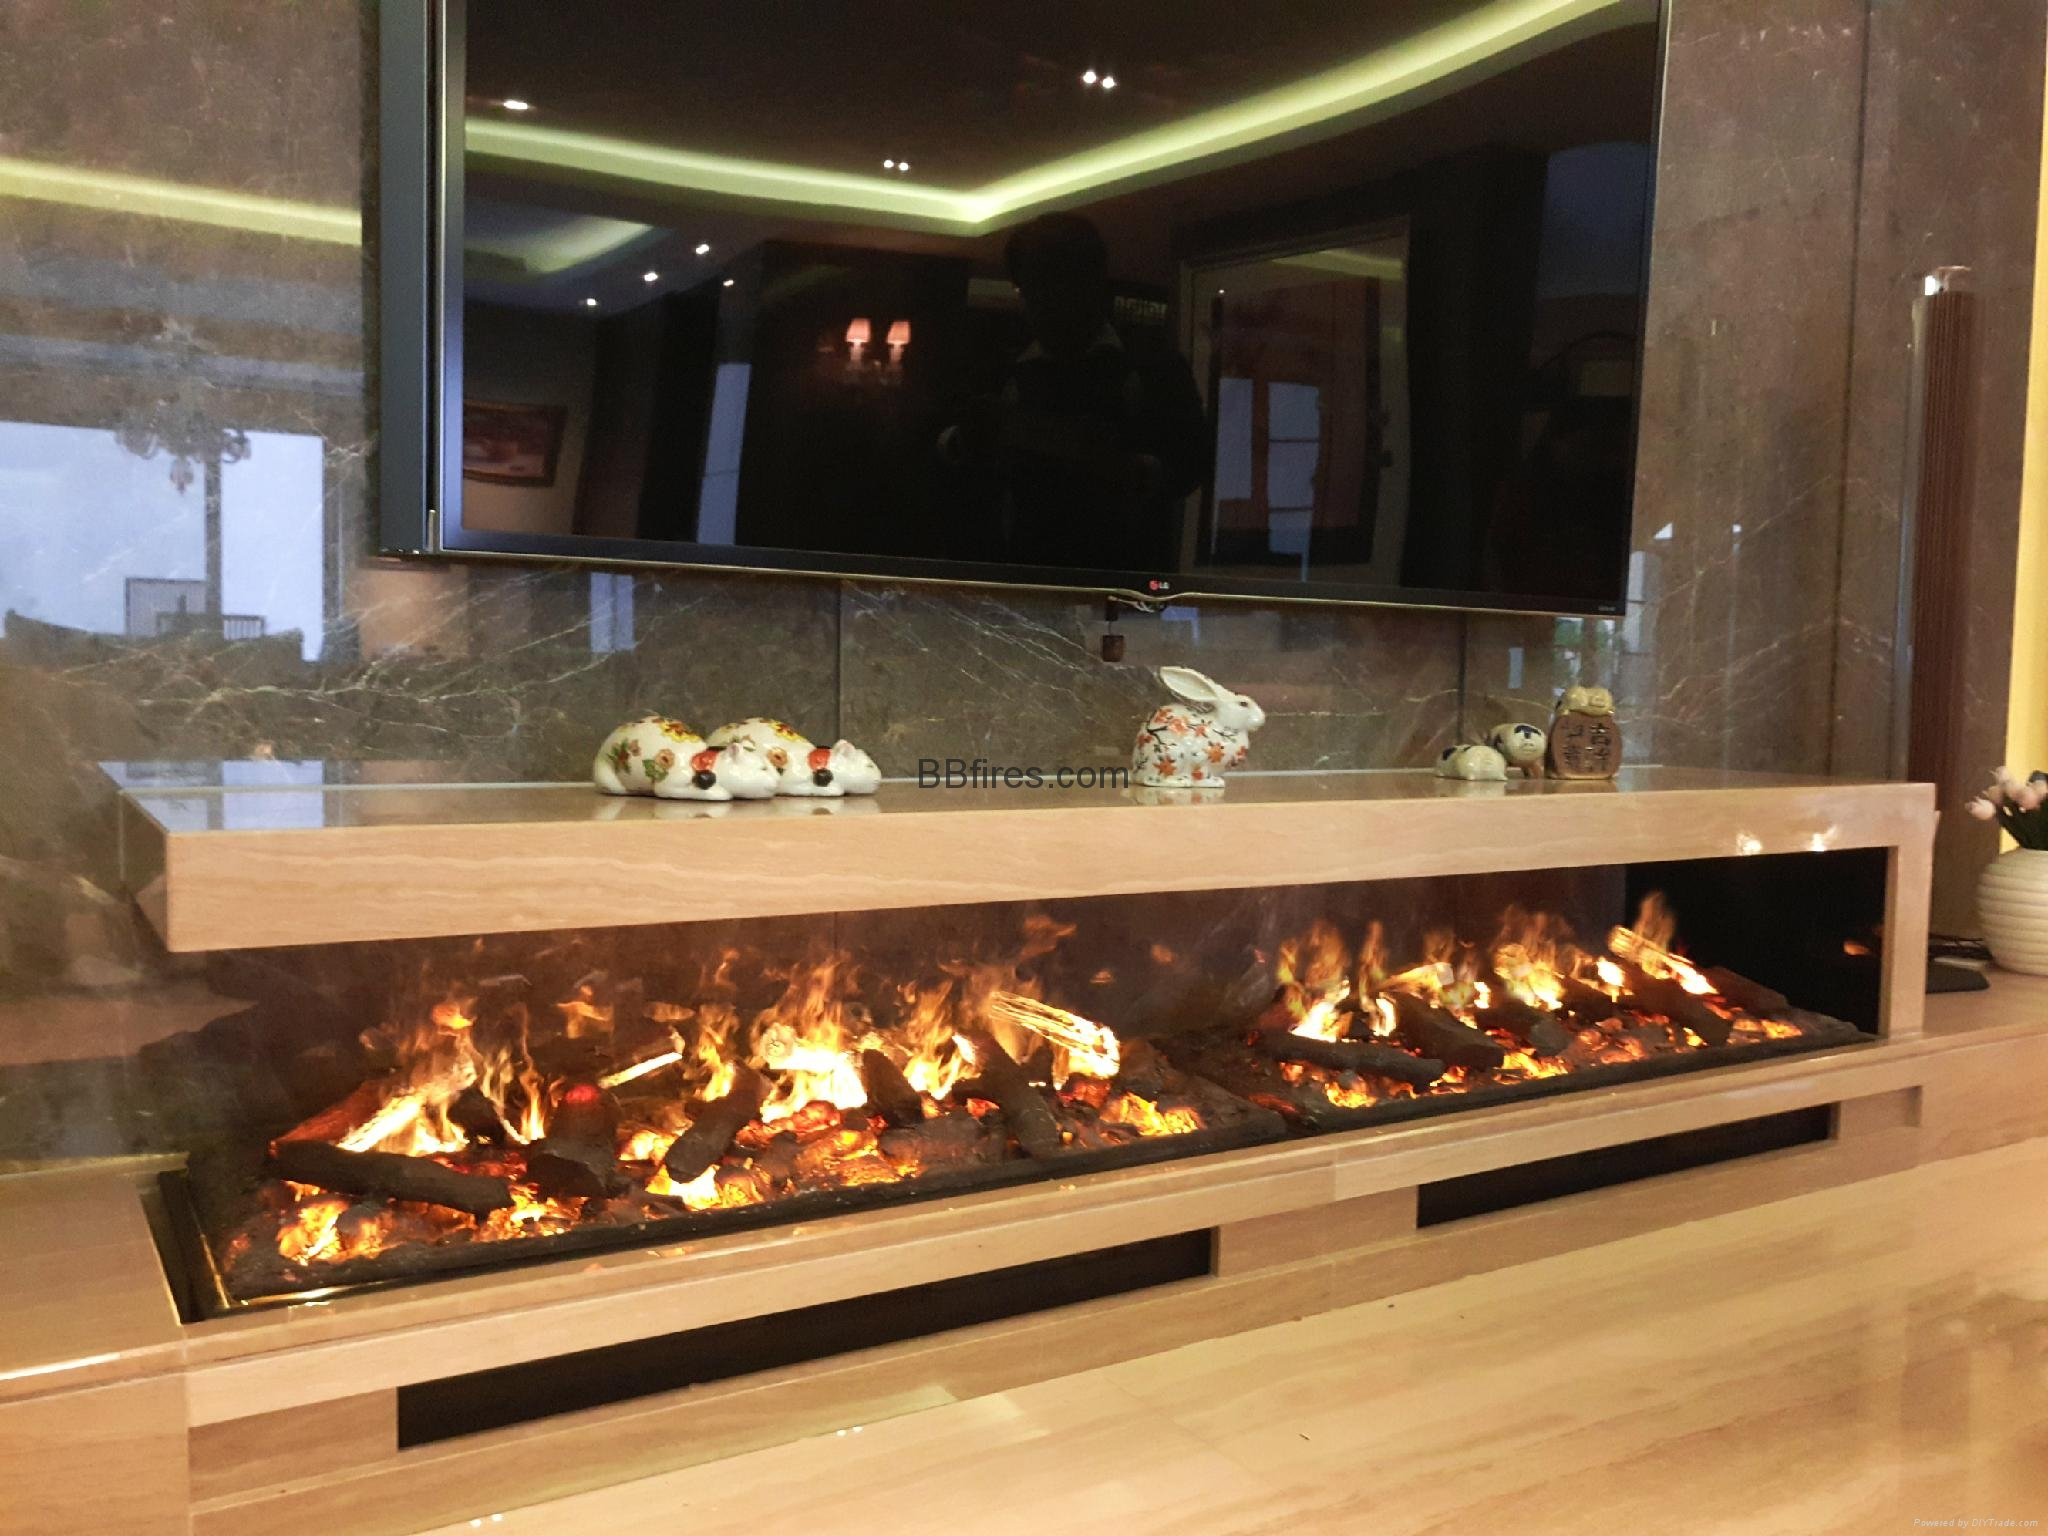 ventless talking gas fireplaces popular vapor water design inserts book recommended image fireplace of